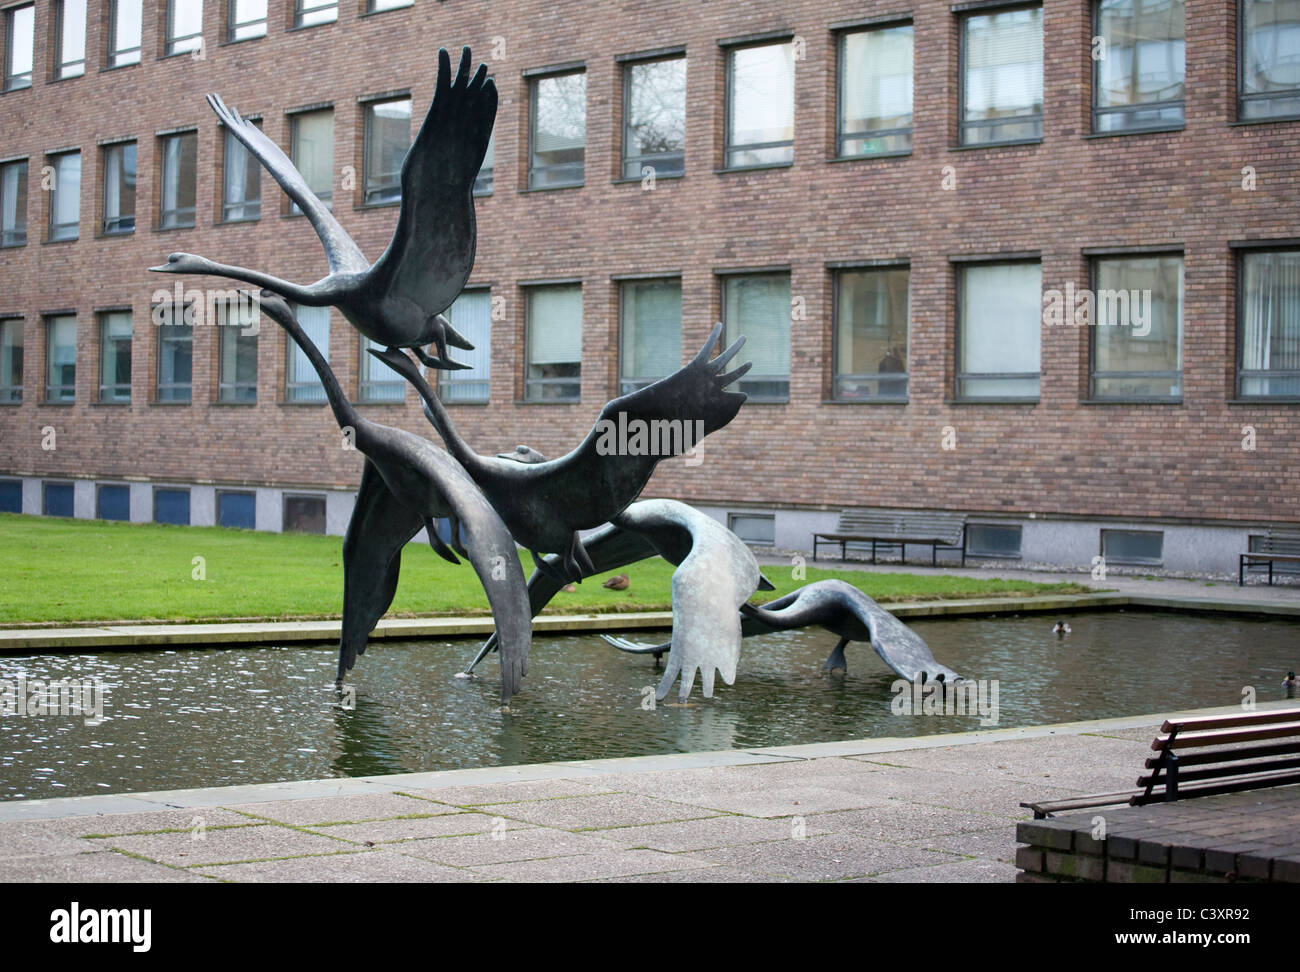 'Swans in Flight' by David Wynne (1968) in the grounds of Newcastle Civic Centre - Stock Image